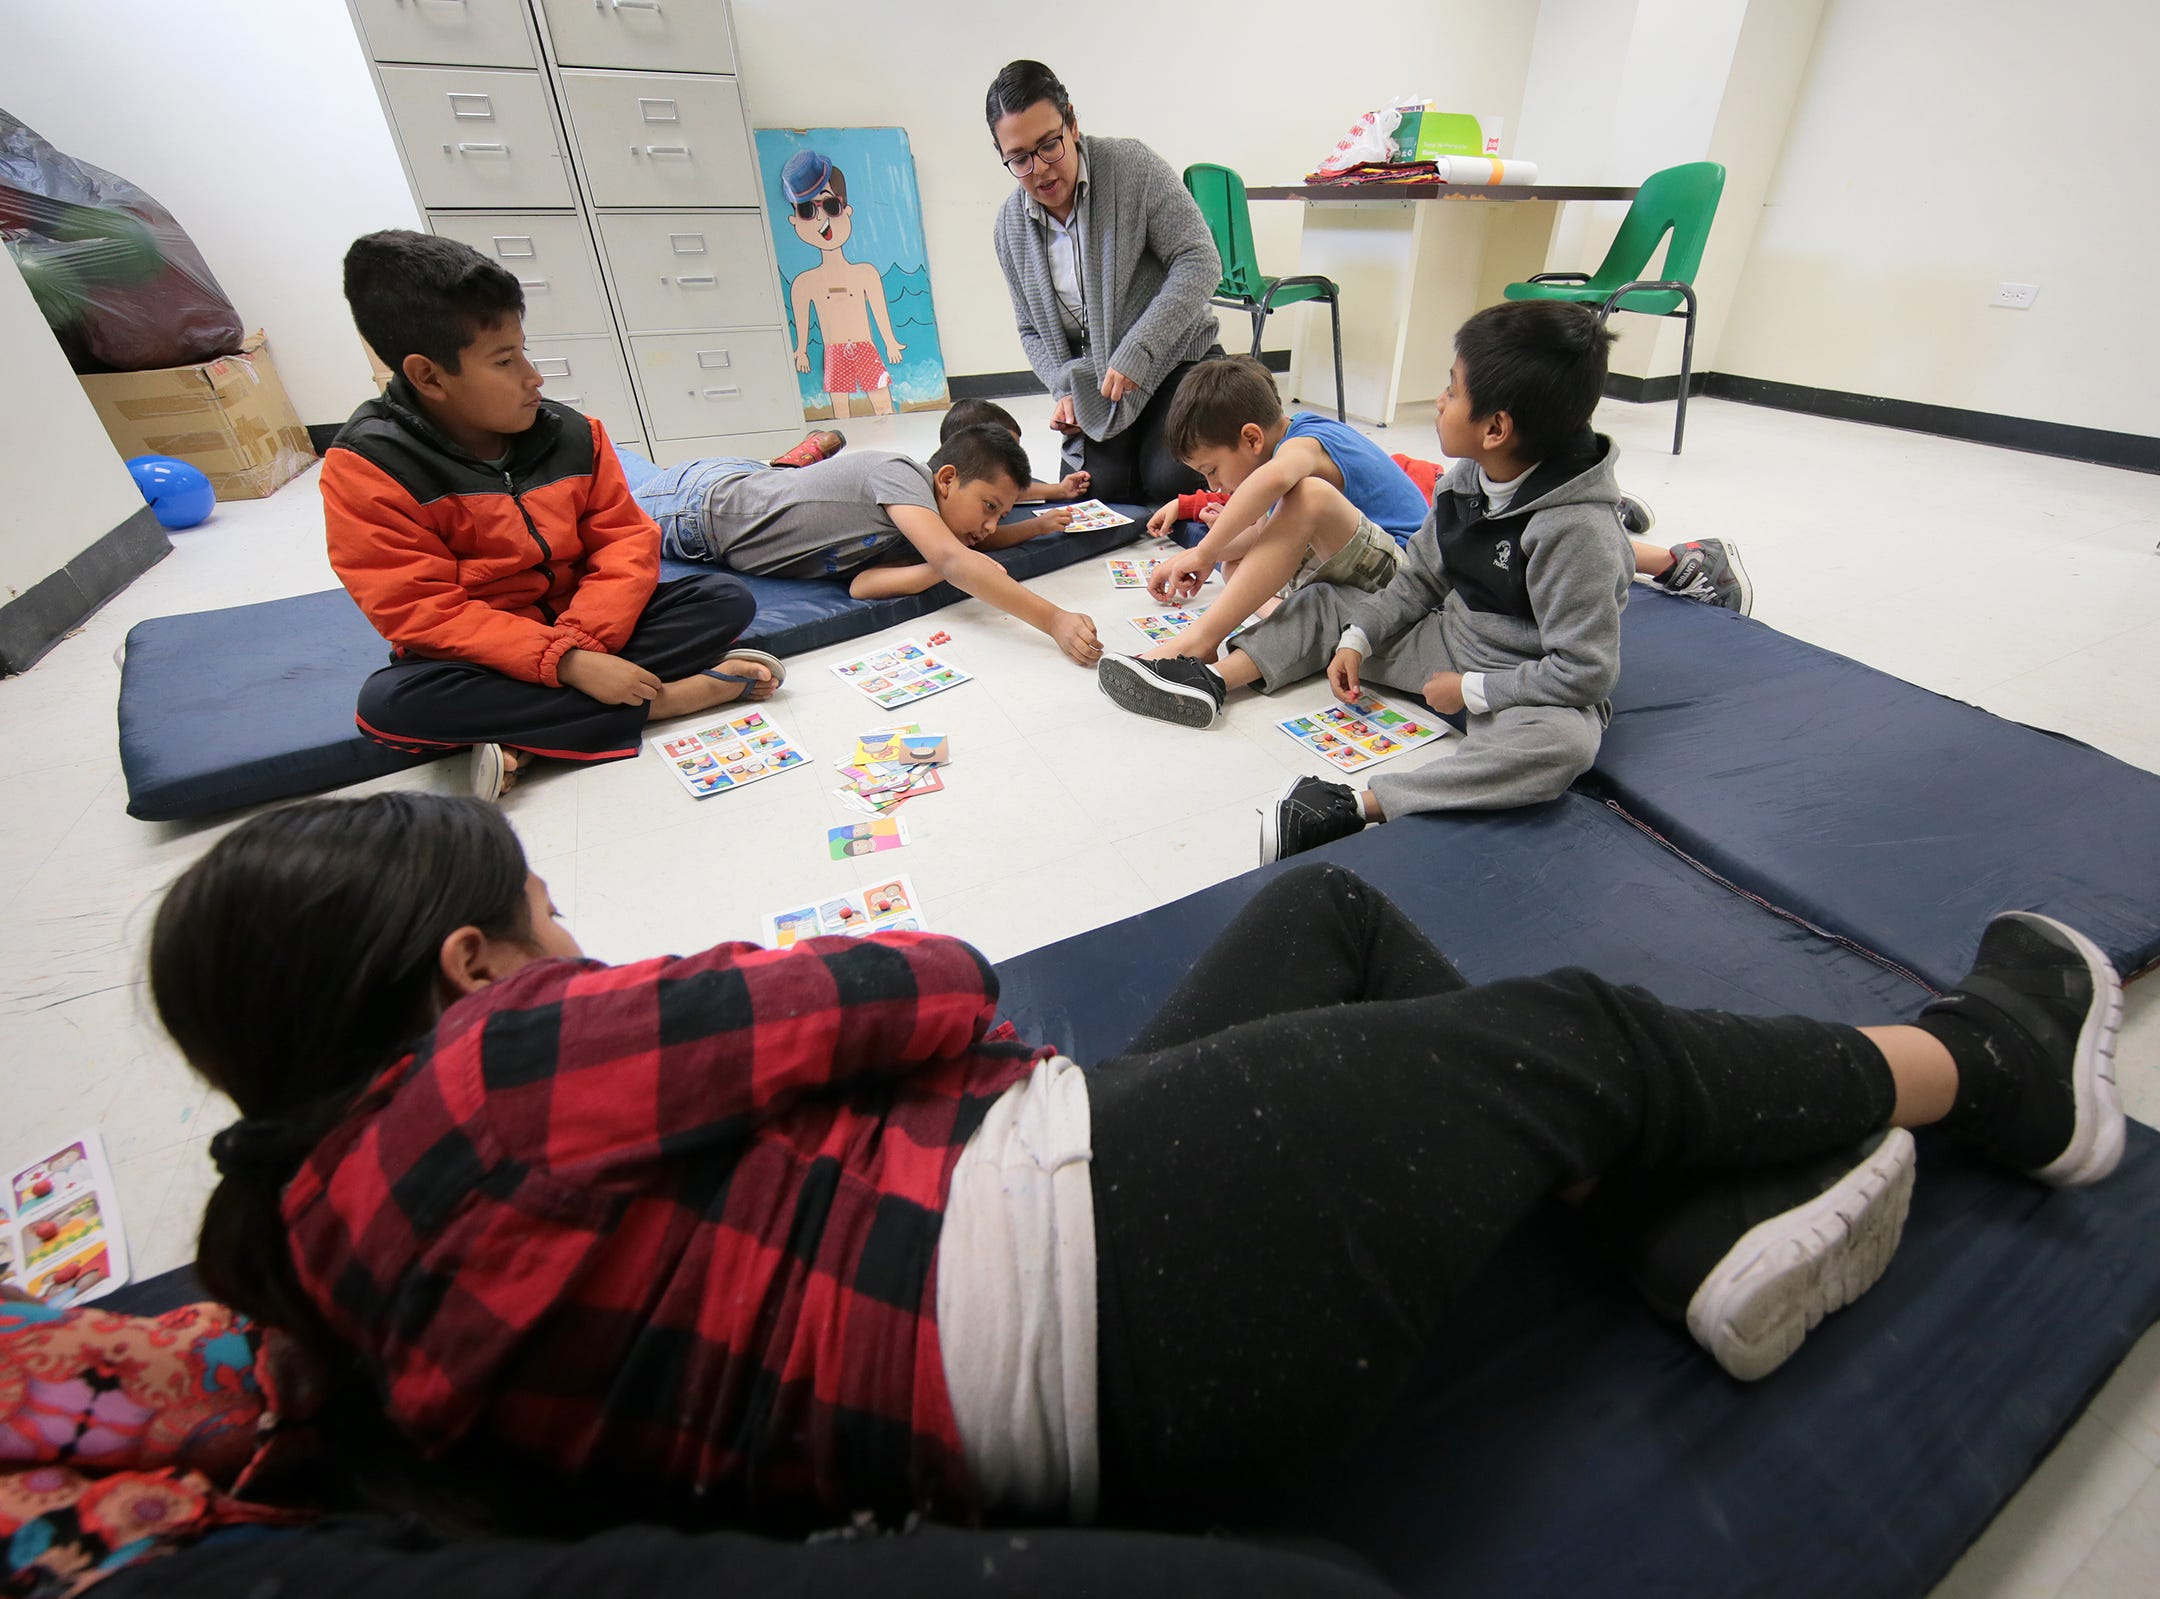 Child counselor Karen Serrano works with migrant children in a shelter in Juarez. Migrant families are waiting at the Colegio de Bachilleres in Juarez for their assigned number to be called to cross the border.